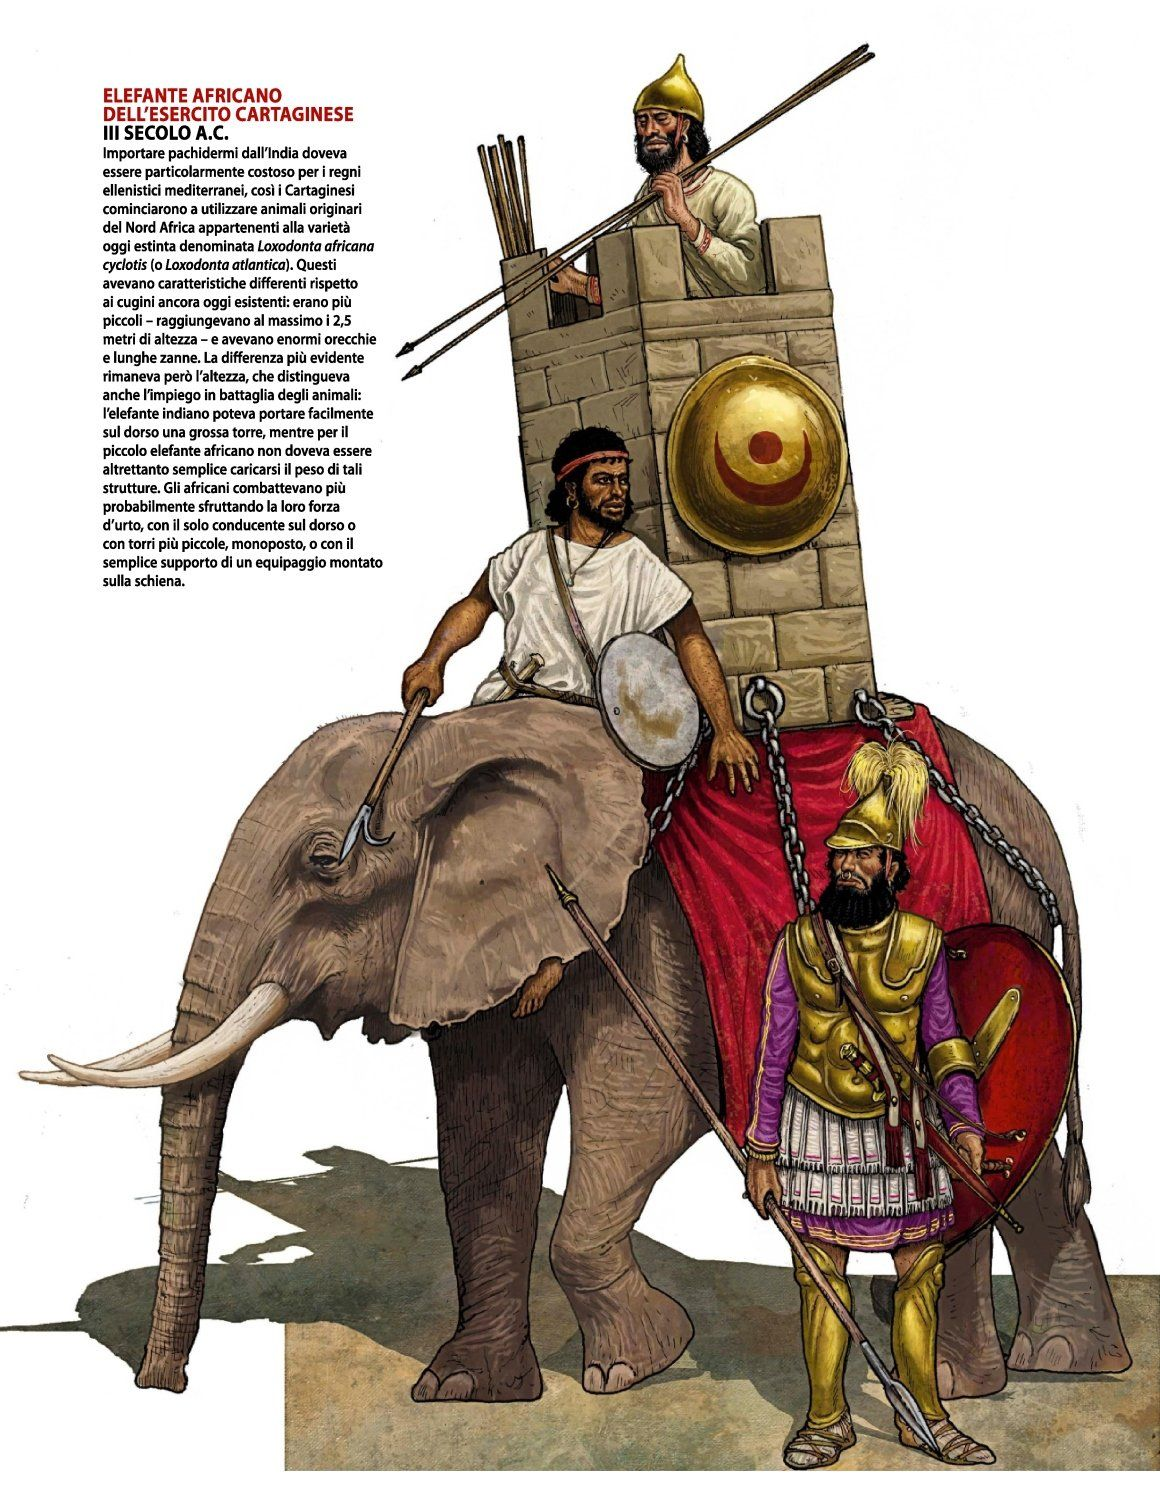 sundiata war At mema, sundiata spends some time with moussa tounkara, who acts as a father figure for sundiata and teaches him the ways of war tounkara hopes to make sundiata his heir sundiata learns of the evil sorcerer king soumaoro kanté, who is slowly conquering all the kingdoms in mali.